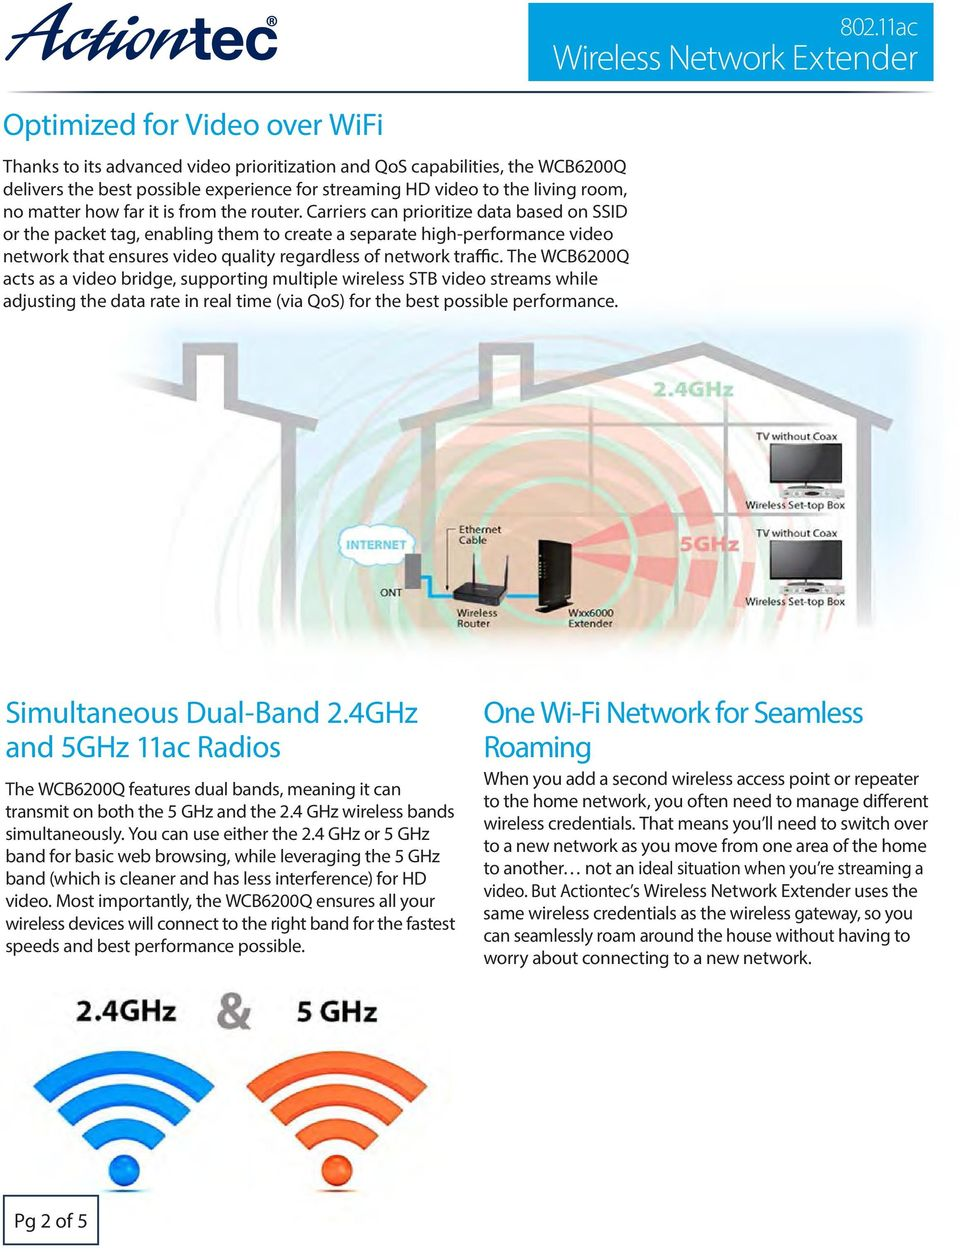 Carriers can prioritize data based on SSID or the packet tag, enabling them to create a separate high-performance video network that ensures video quality regardless of network traffic.